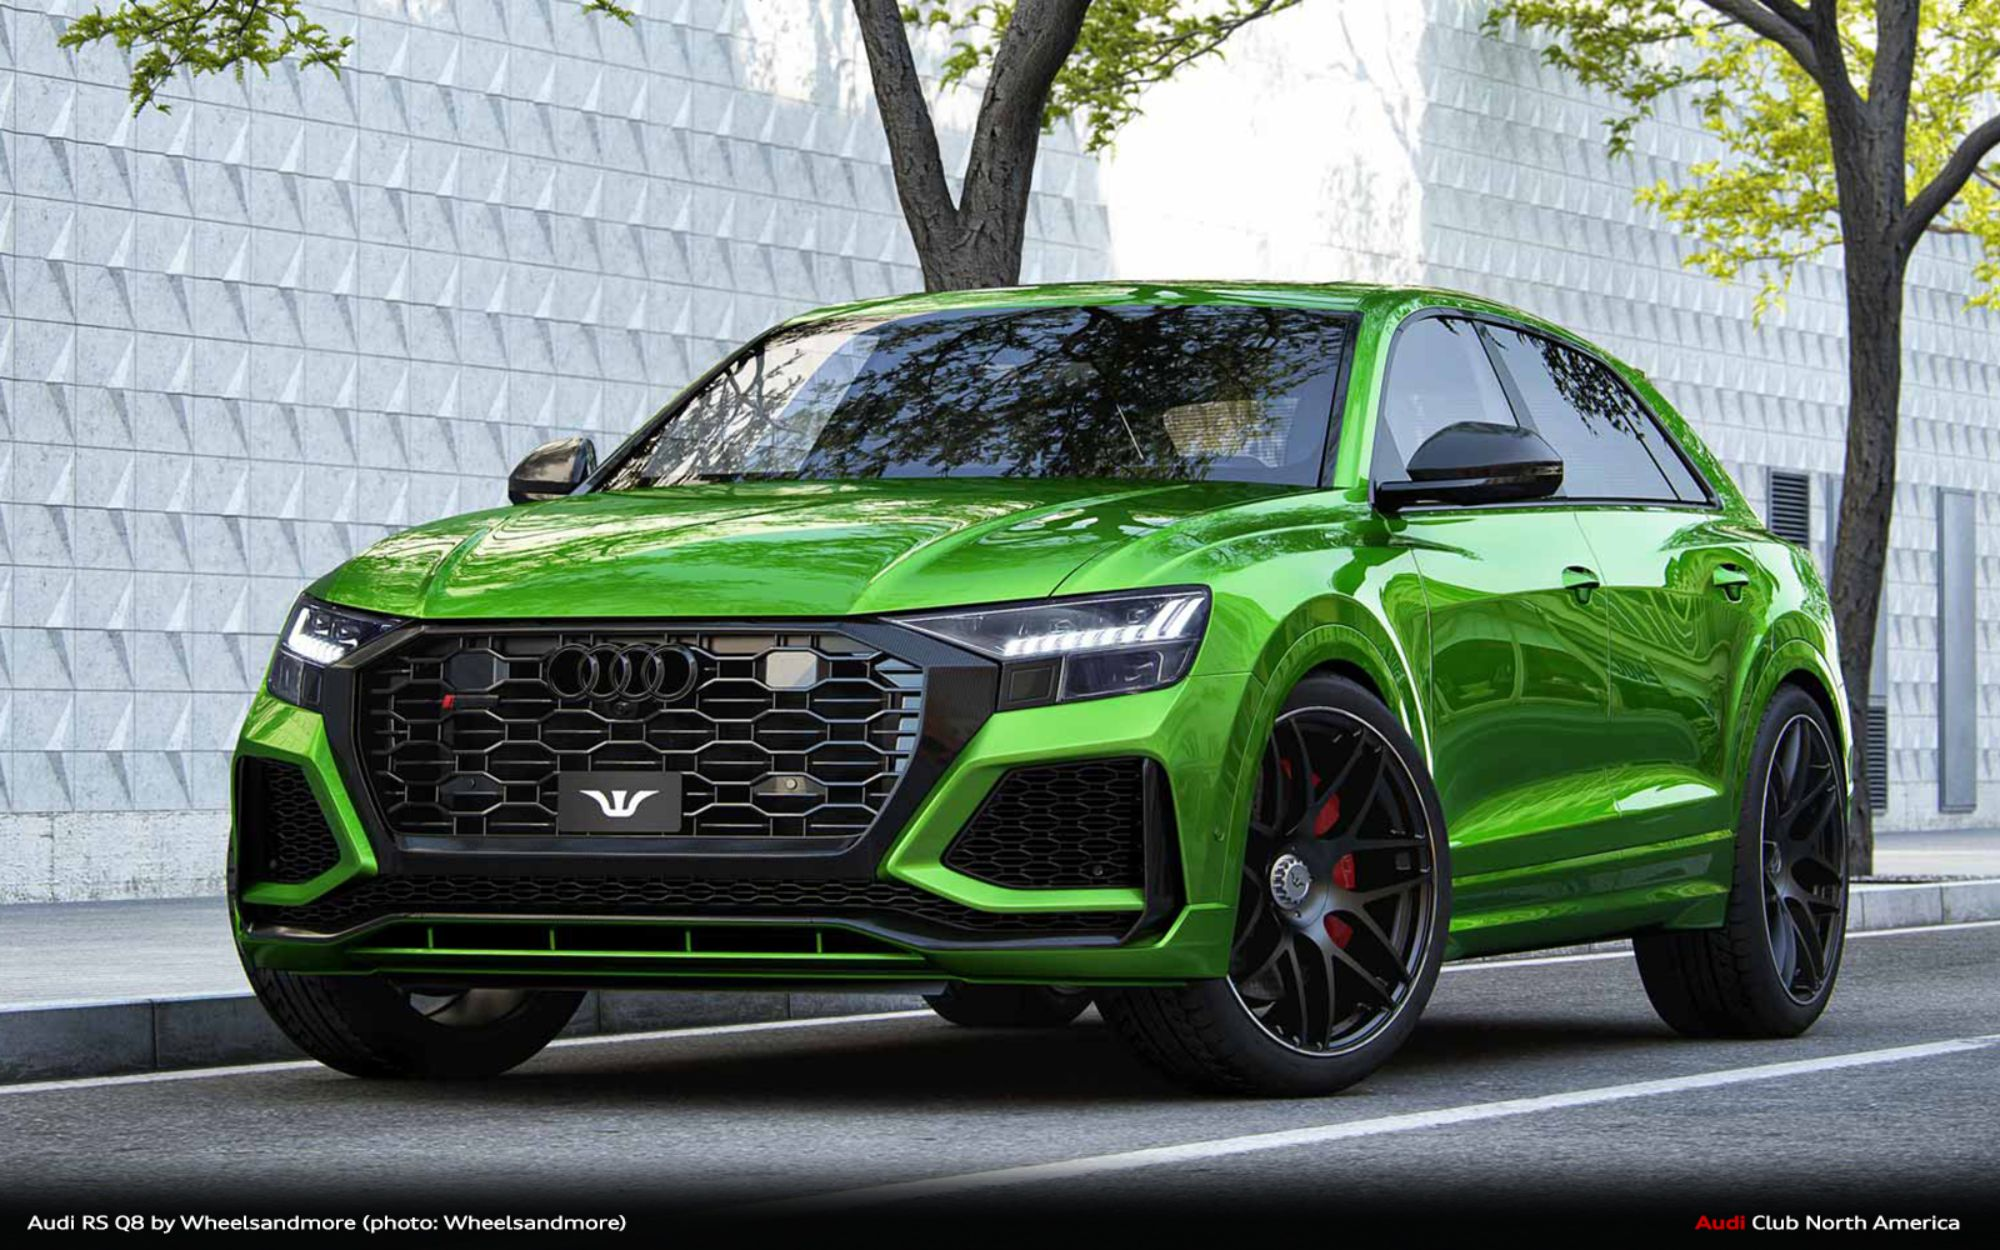 Wheelsandmore Turns Their Eye to the RS Q8